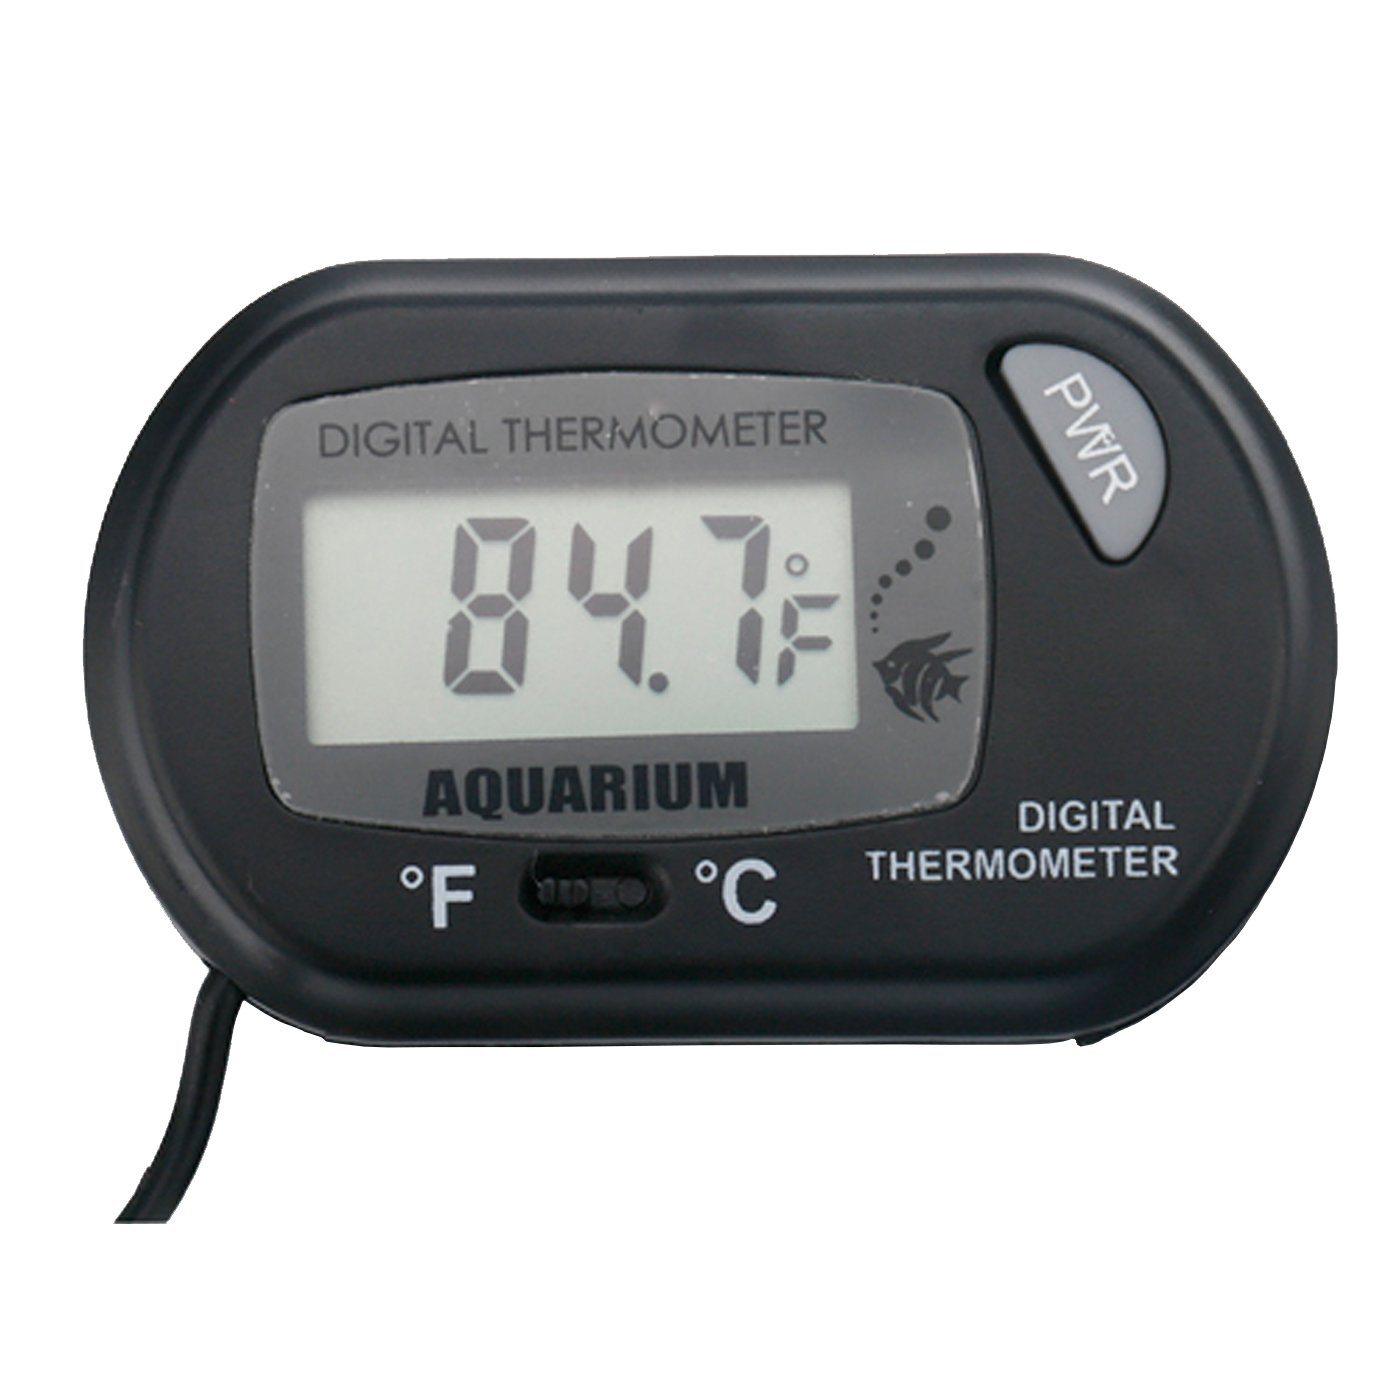 Professional Digital Thermometer for Hydroponics & Aquaculture , Amphibian & Reptile Terrariums , Freshwater Tropical Fish & Saltwater Fish Aquariums , Black